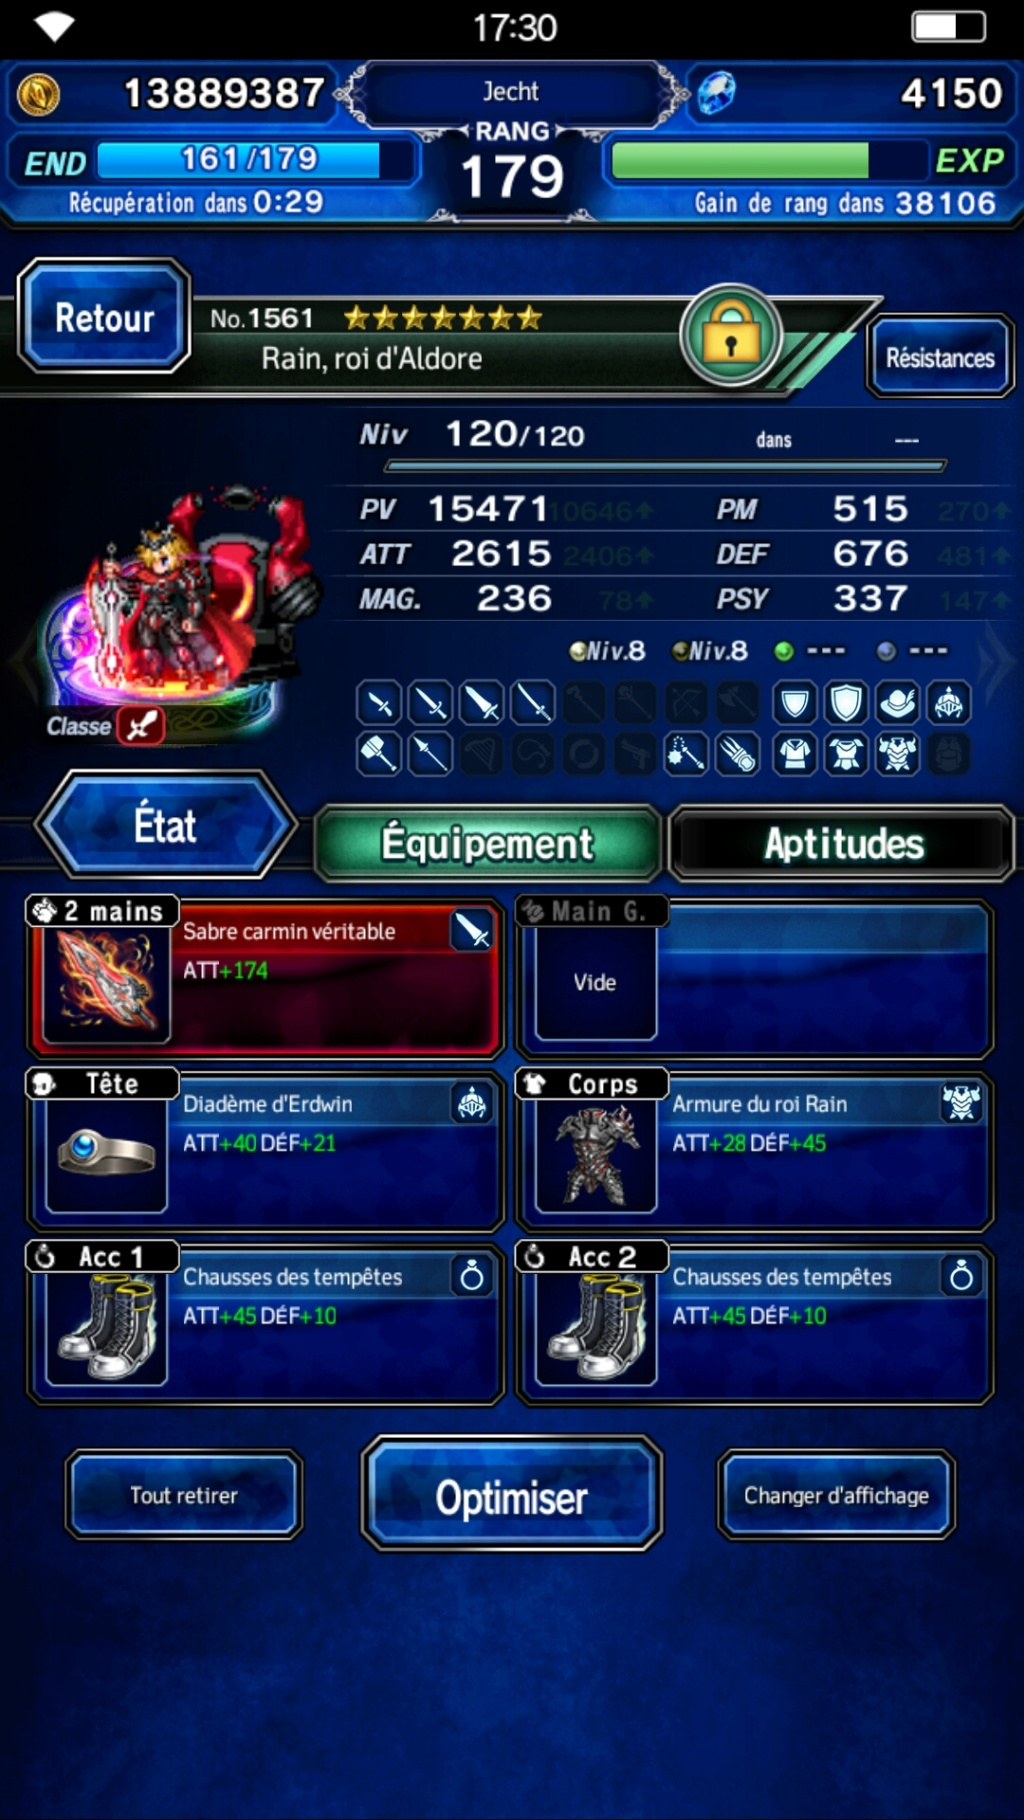 Invocations du moment - FFBE (AKRain) - du 07/11 au 21/11/19 - Page 4 Scree107